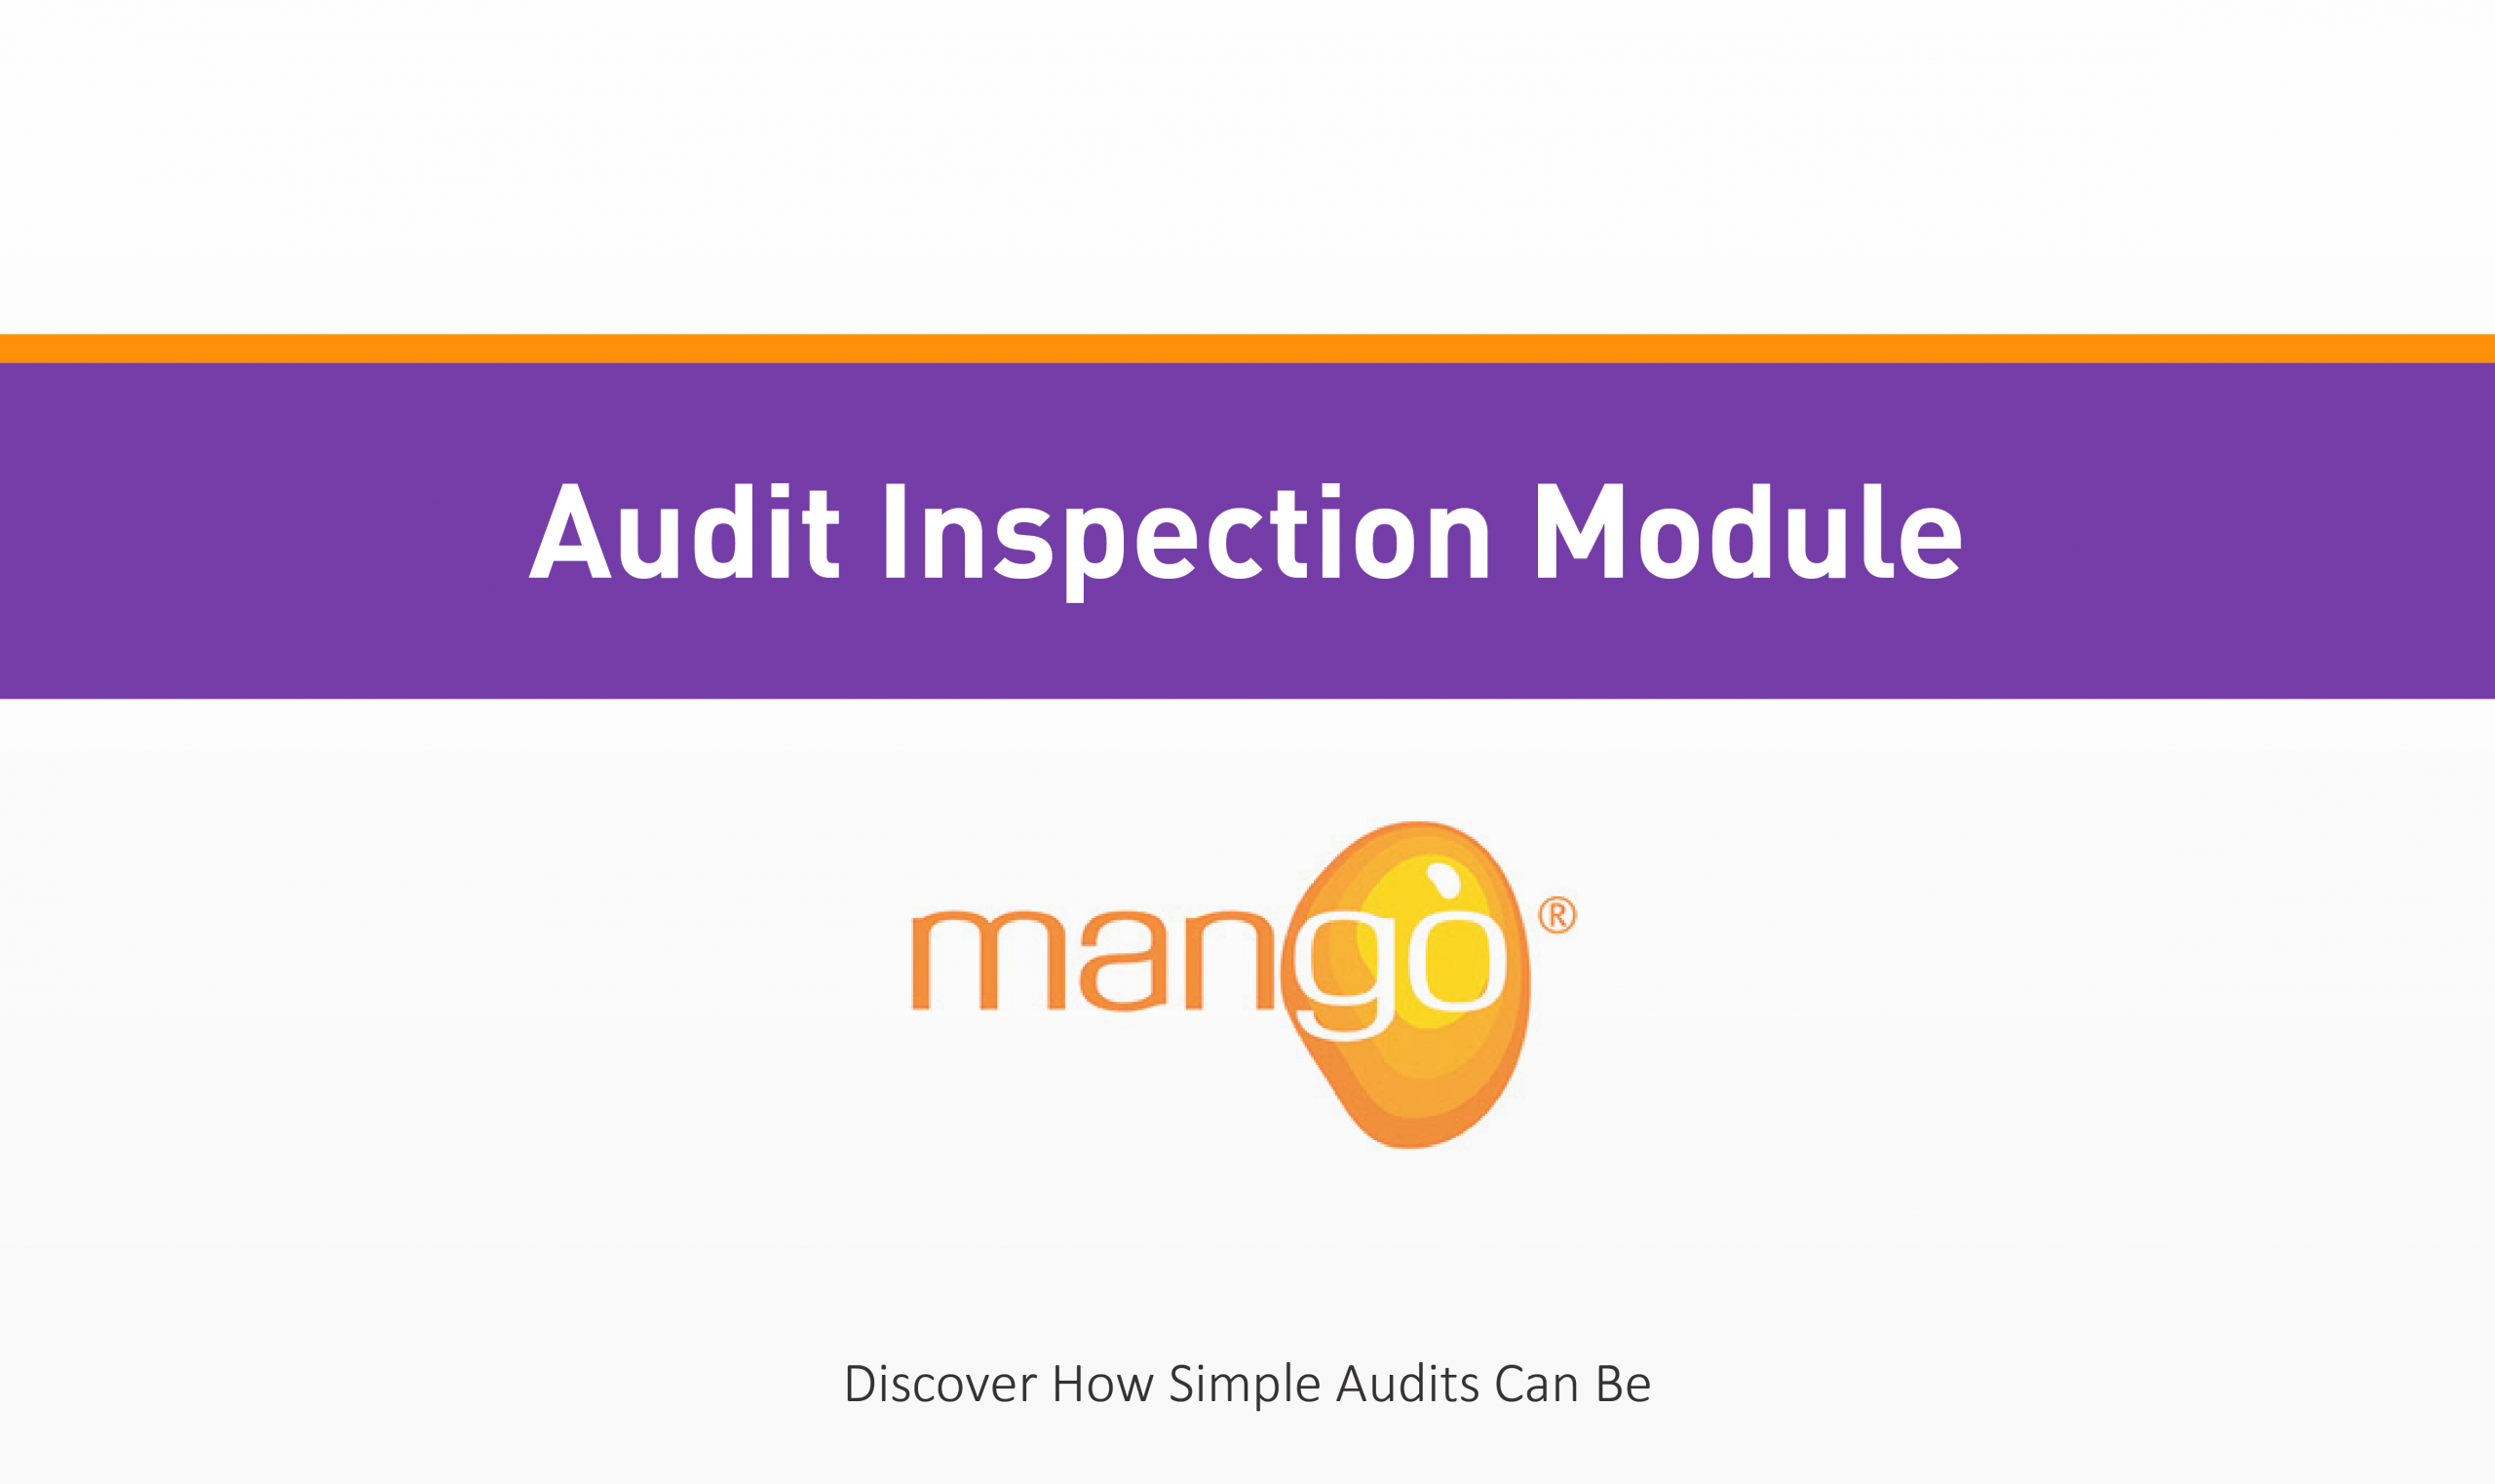 Audit Inspection Quality Health Safety Environment Management Compliance Services Australia QHSE Consulting And Auditing Mango Compliance Software Solutions